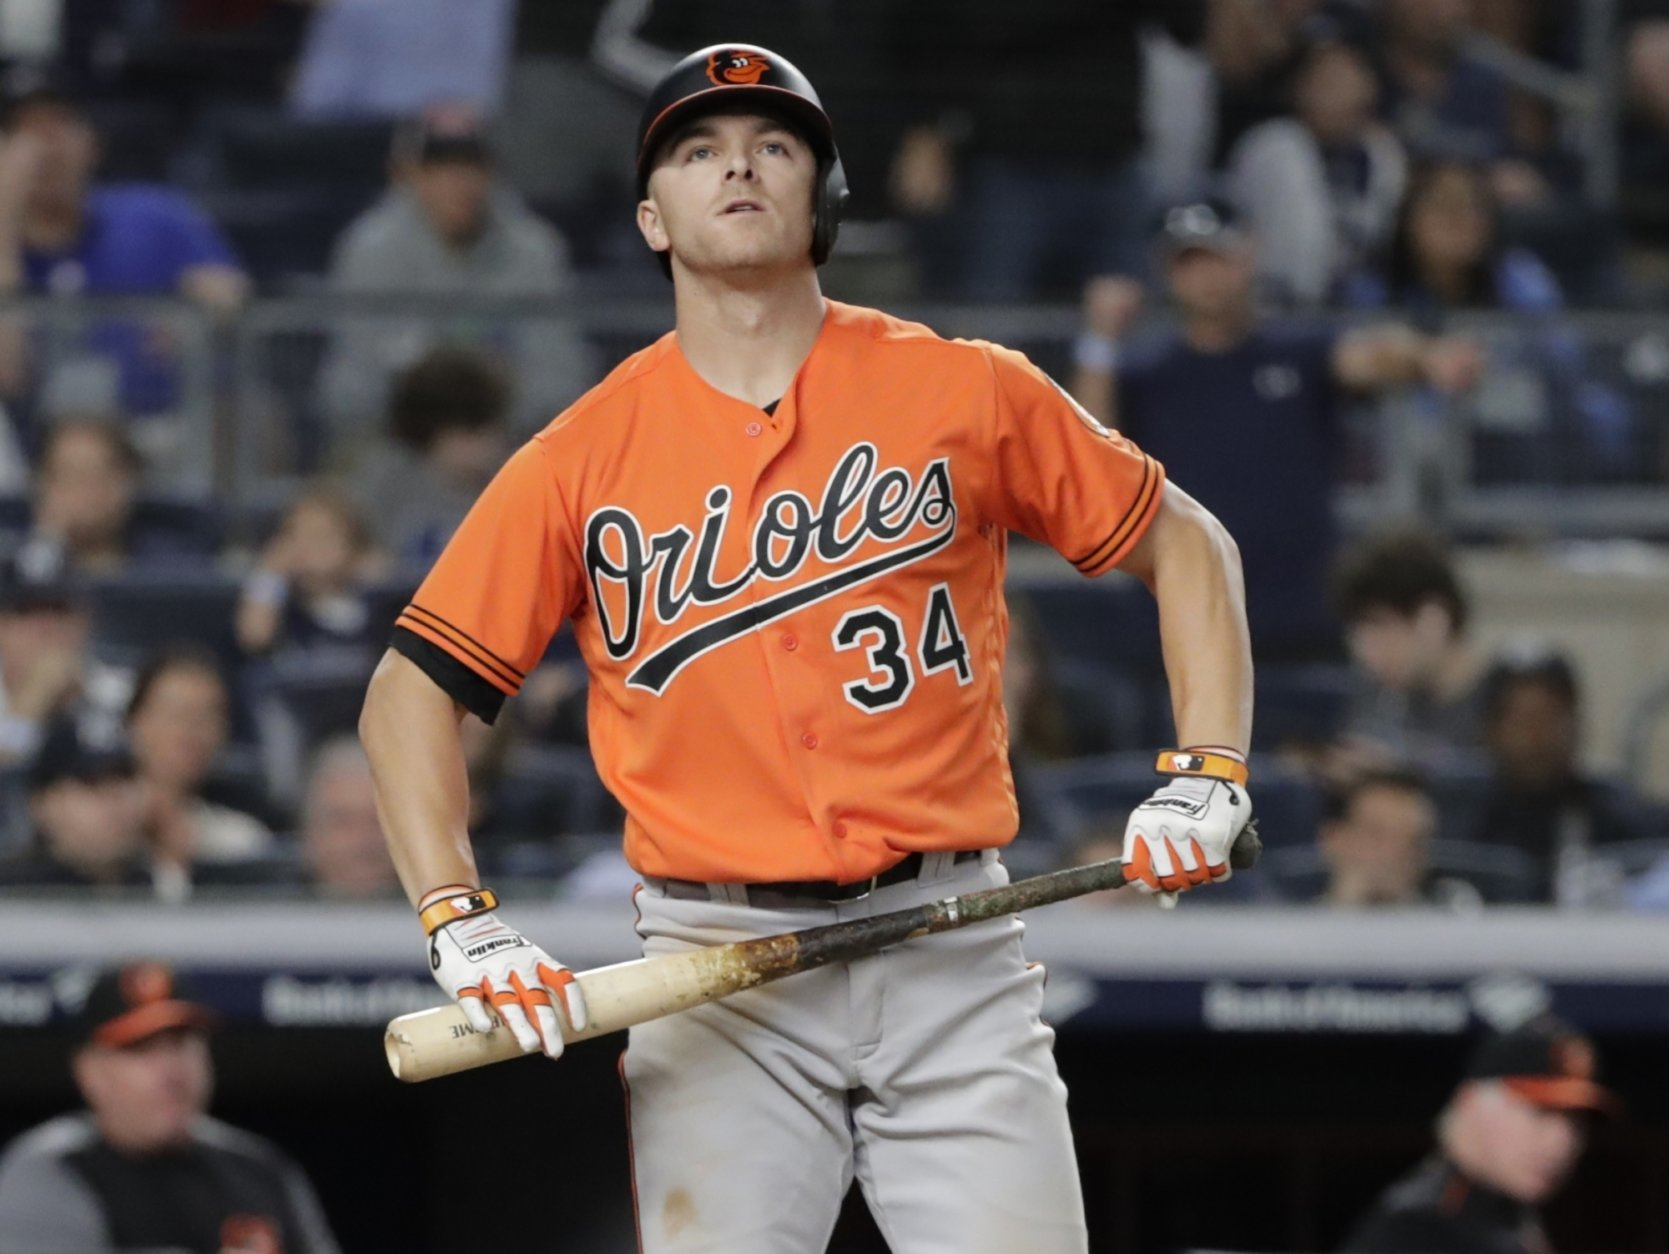 Baltimore Orioles' John Andreoli (34) reacts after striking out during the eleventh inning of a baseball game against the New York Yankees Saturday, Sept. 22, 2018, in New York. (AP Photo/Frank Franklin II)